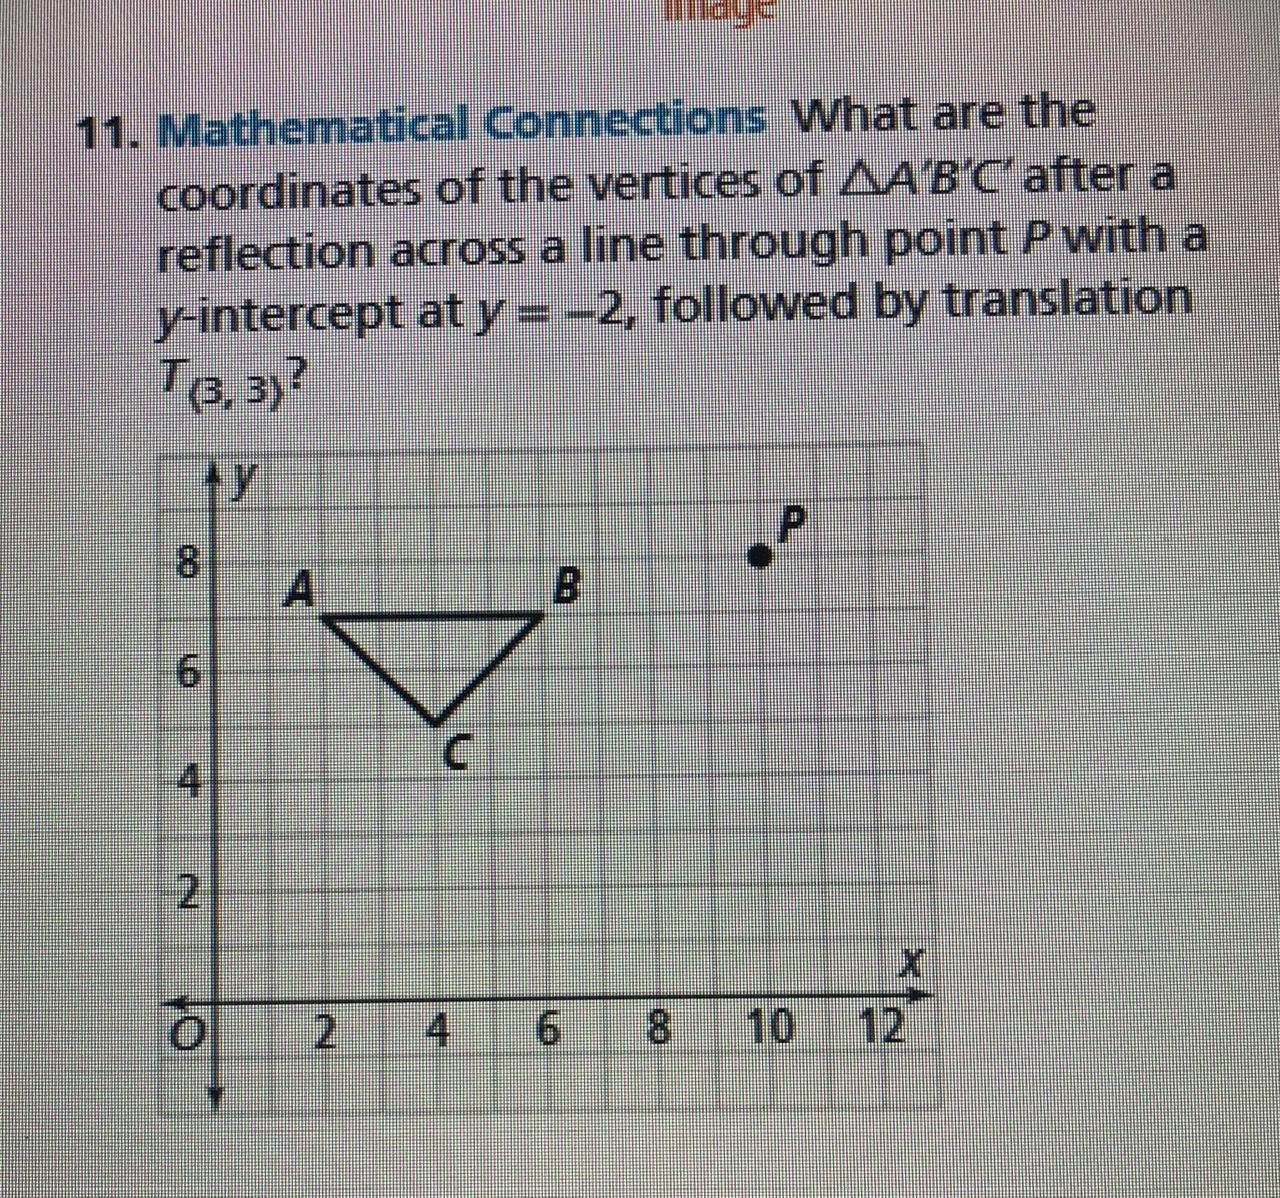 Help? What Are The Coordinates Of The Vertices Of Triangle